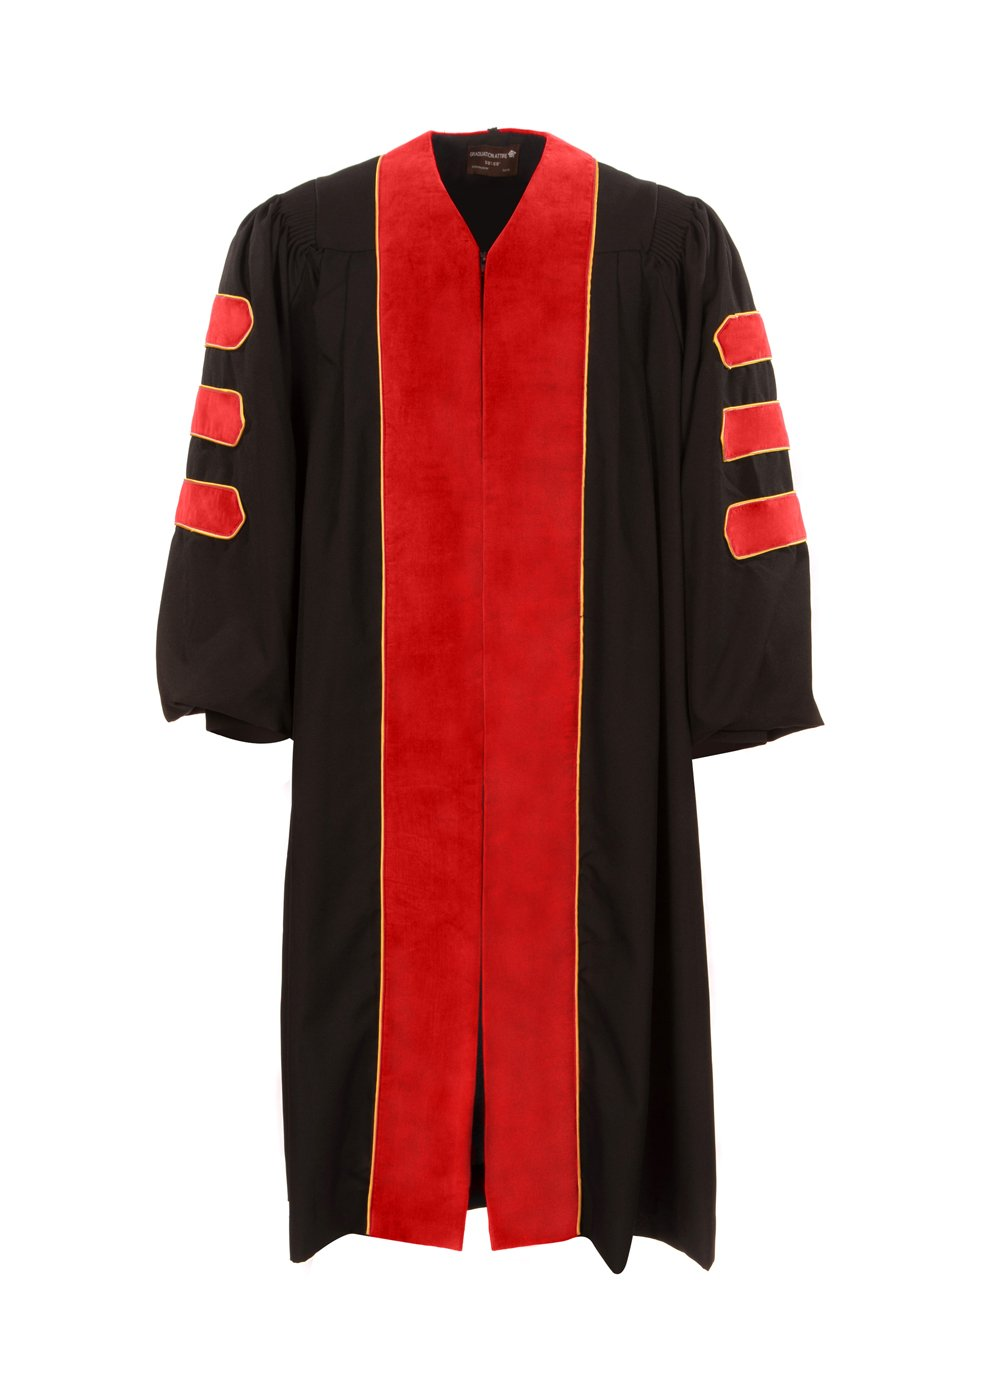 American Doctoral Gown (Black with Red Velvet + Gold Piping) (5'9 - 5'11)